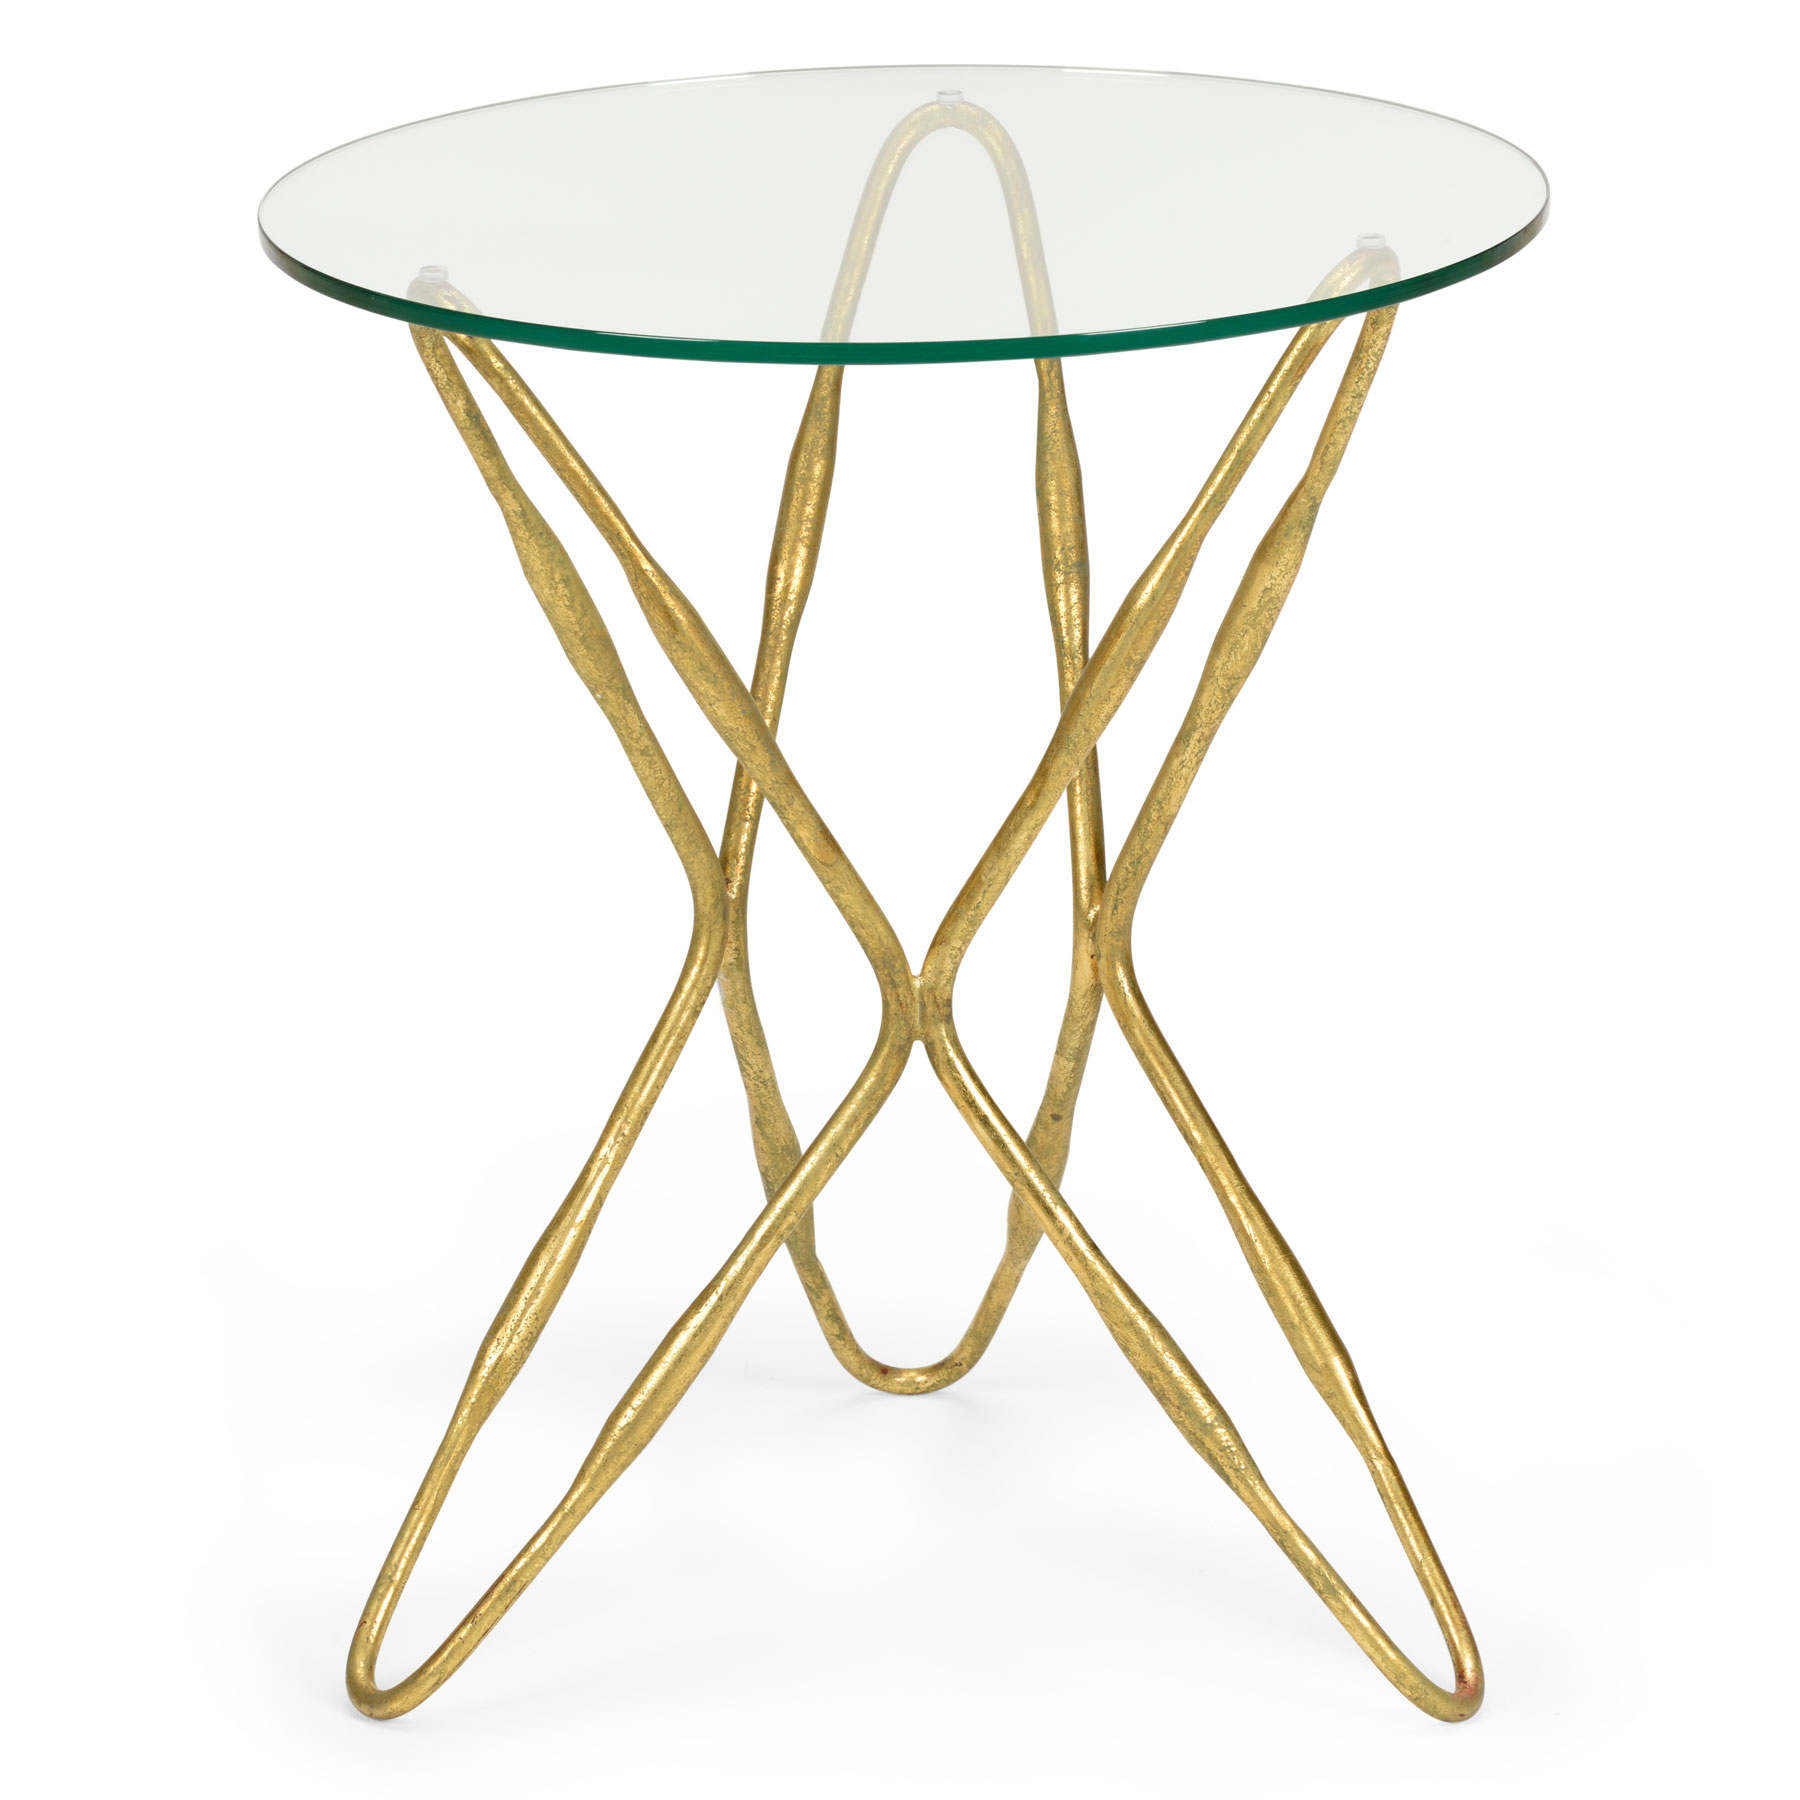 glass top accent table dandelion spell round antique gold leaf base with clear white wicker and chairs grooming utility furniture old wooden industrial look end tables square drop